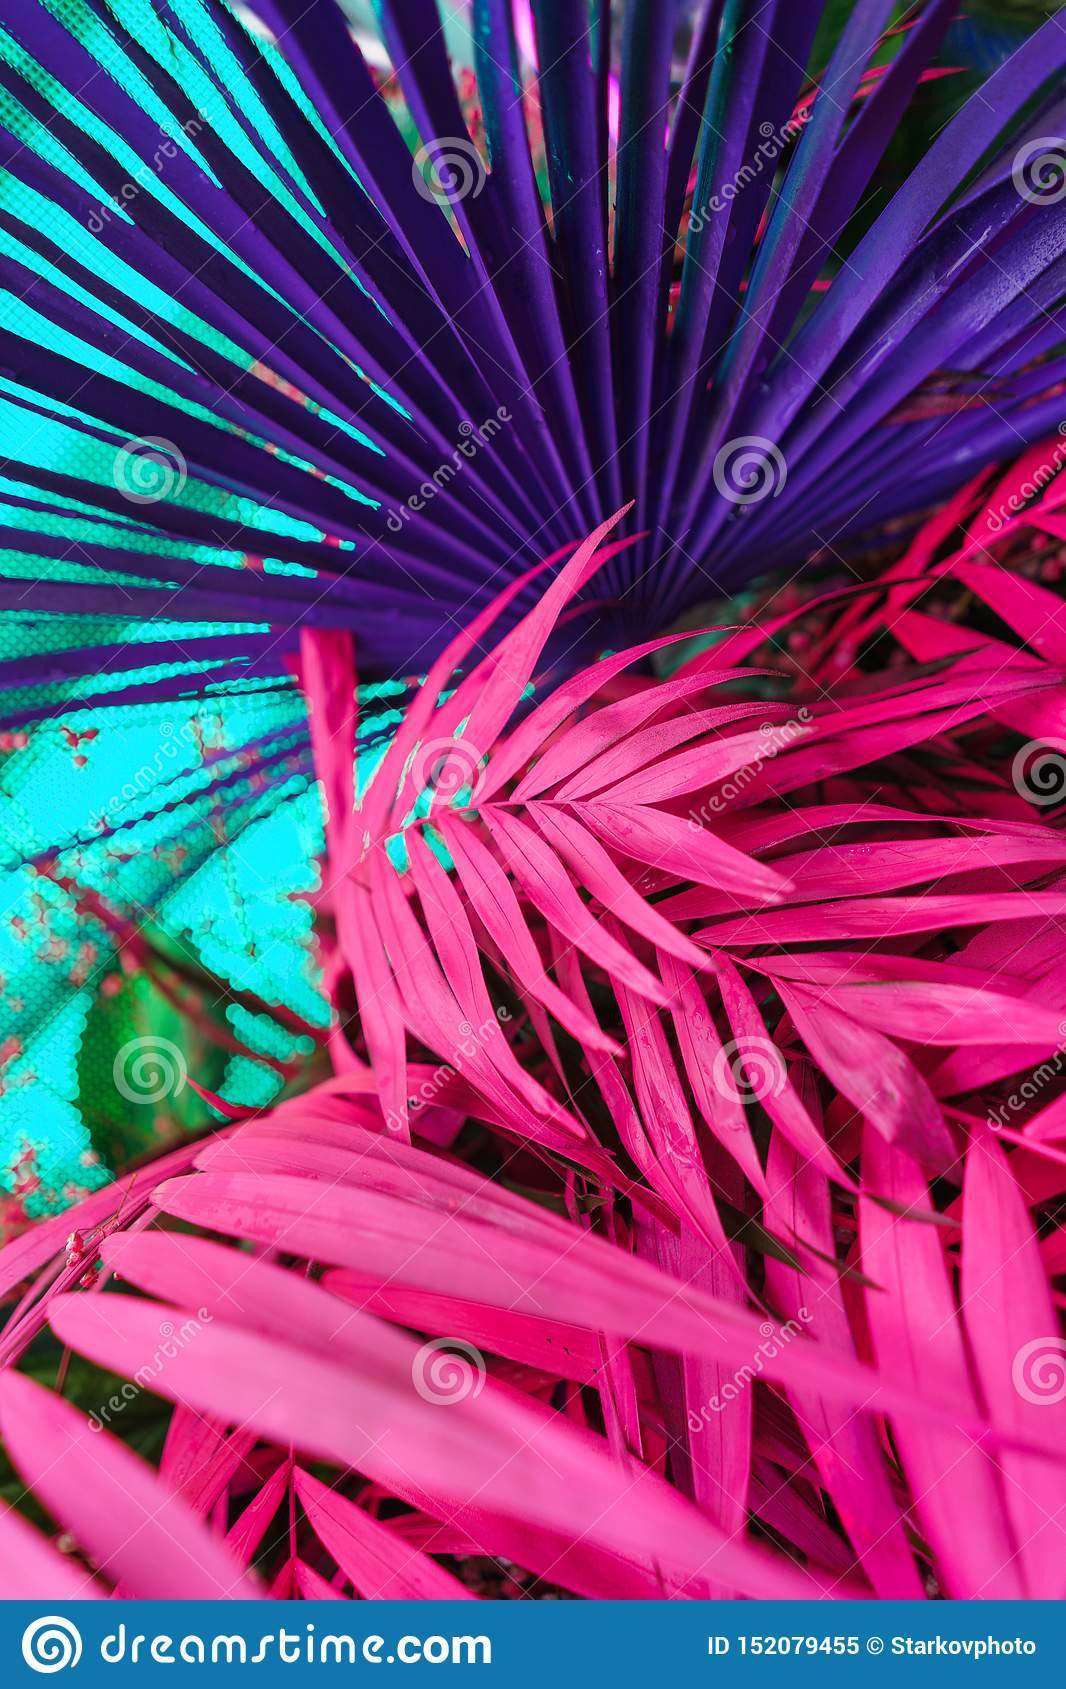 Decoration of tropical leaves painted in bright neon colors.